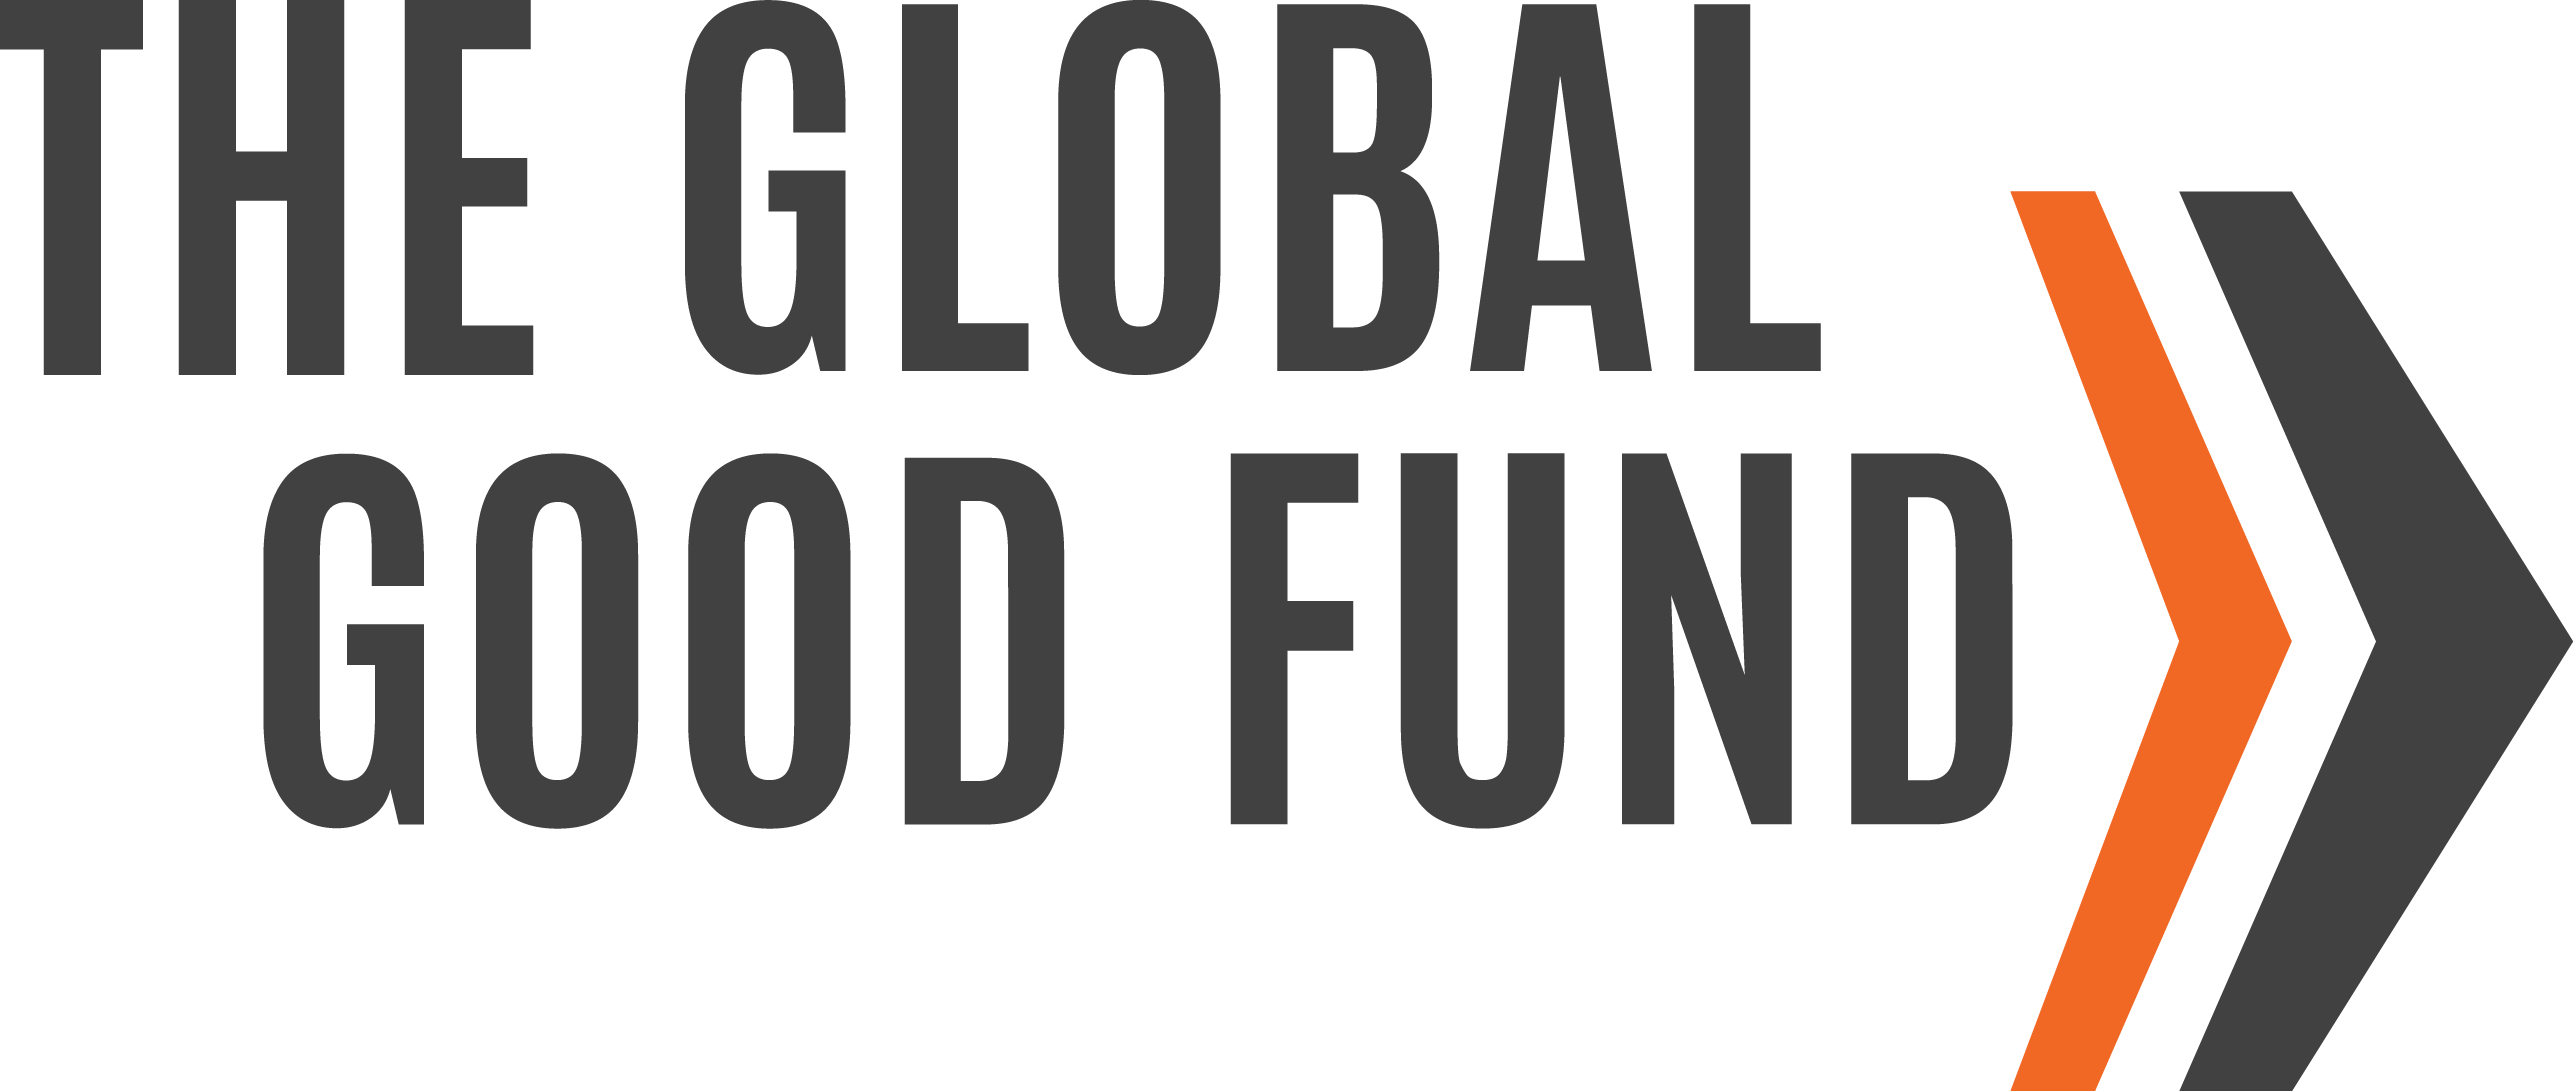 Global Good Fund